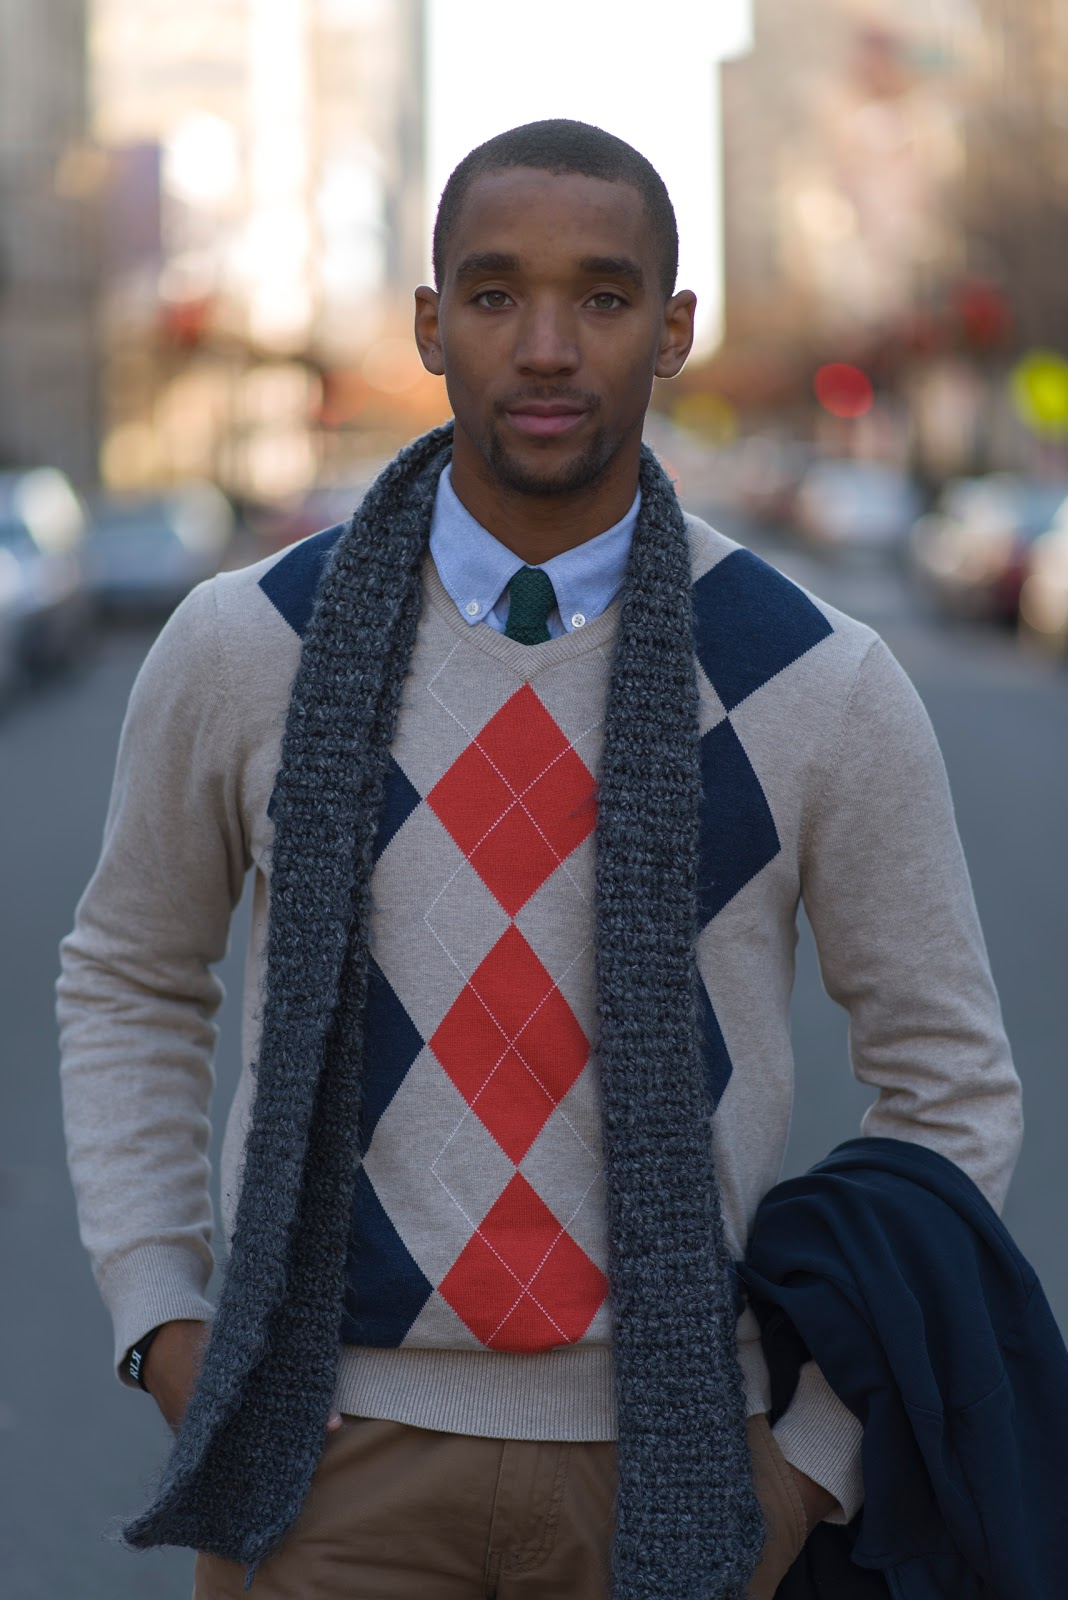 St. Augustine's University student Ronald Moore wears a tan argyle sweater over a sky blue shirt and a tie and under a navy blazer. He is also sporting brown khakis and brown penny loafers with the penny inside!